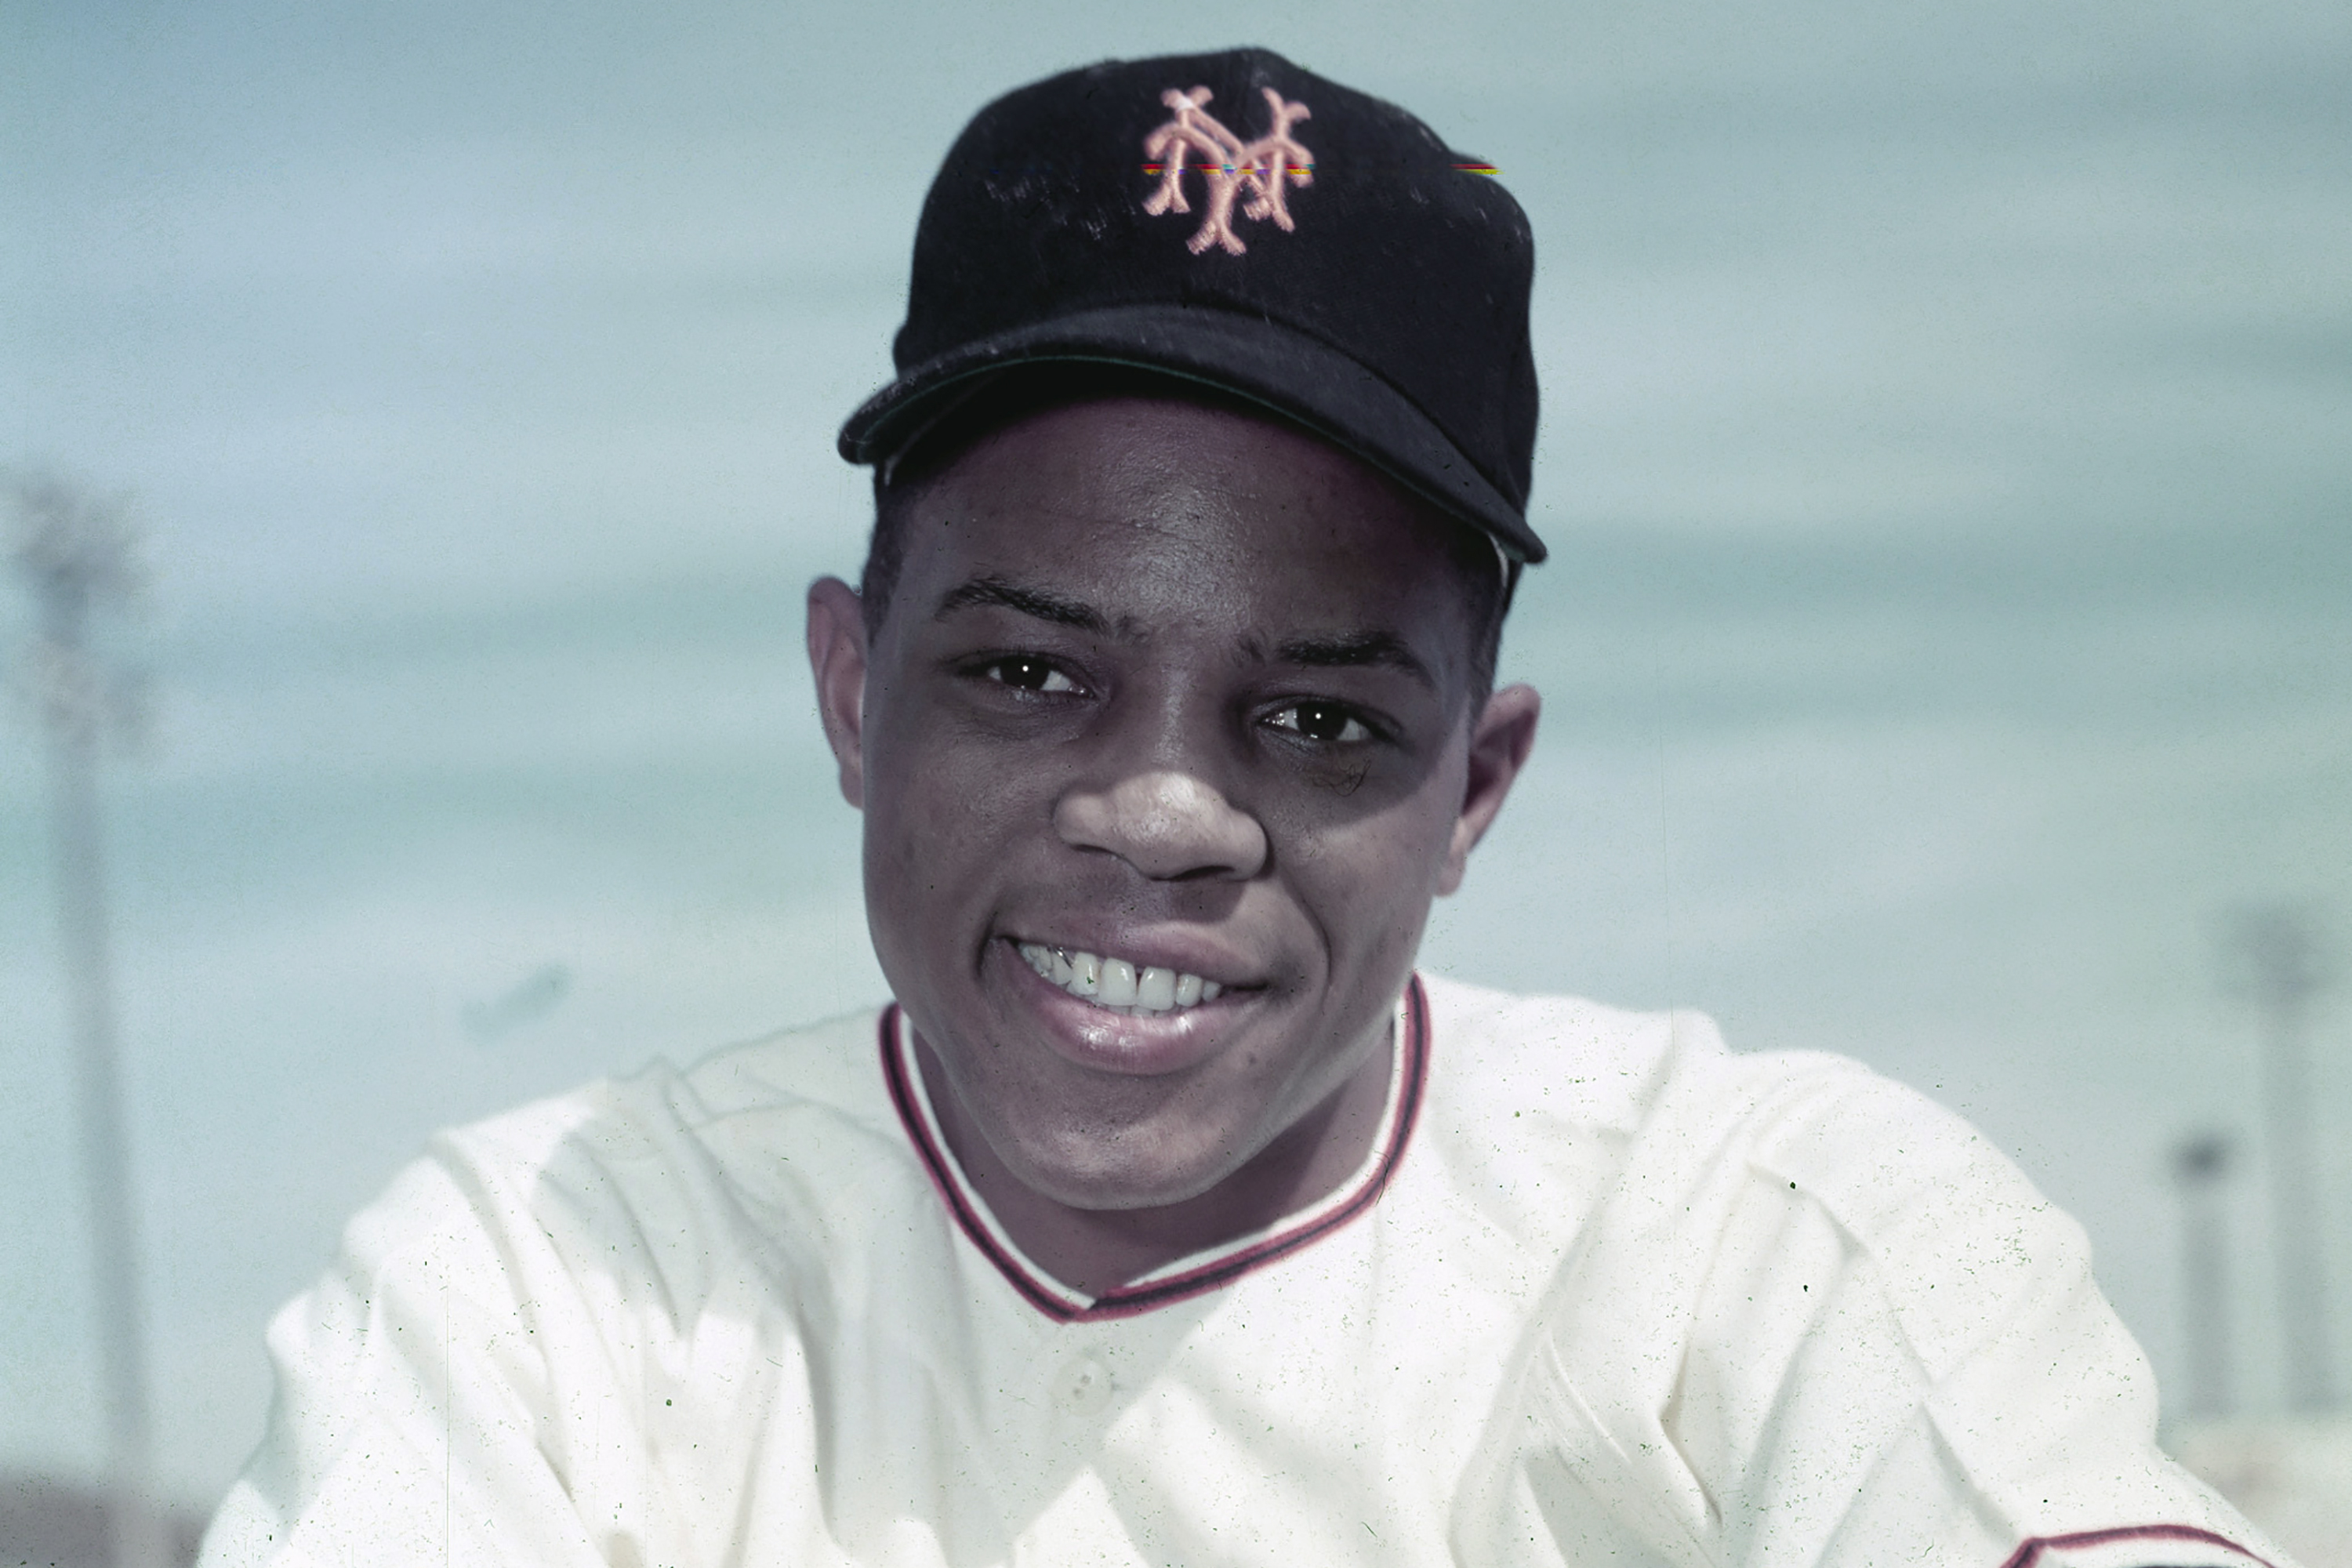 Hall of Famer Willie Mays, who turns 90 on May 6, 2021, has been the subject of all sorts of songs over the years.